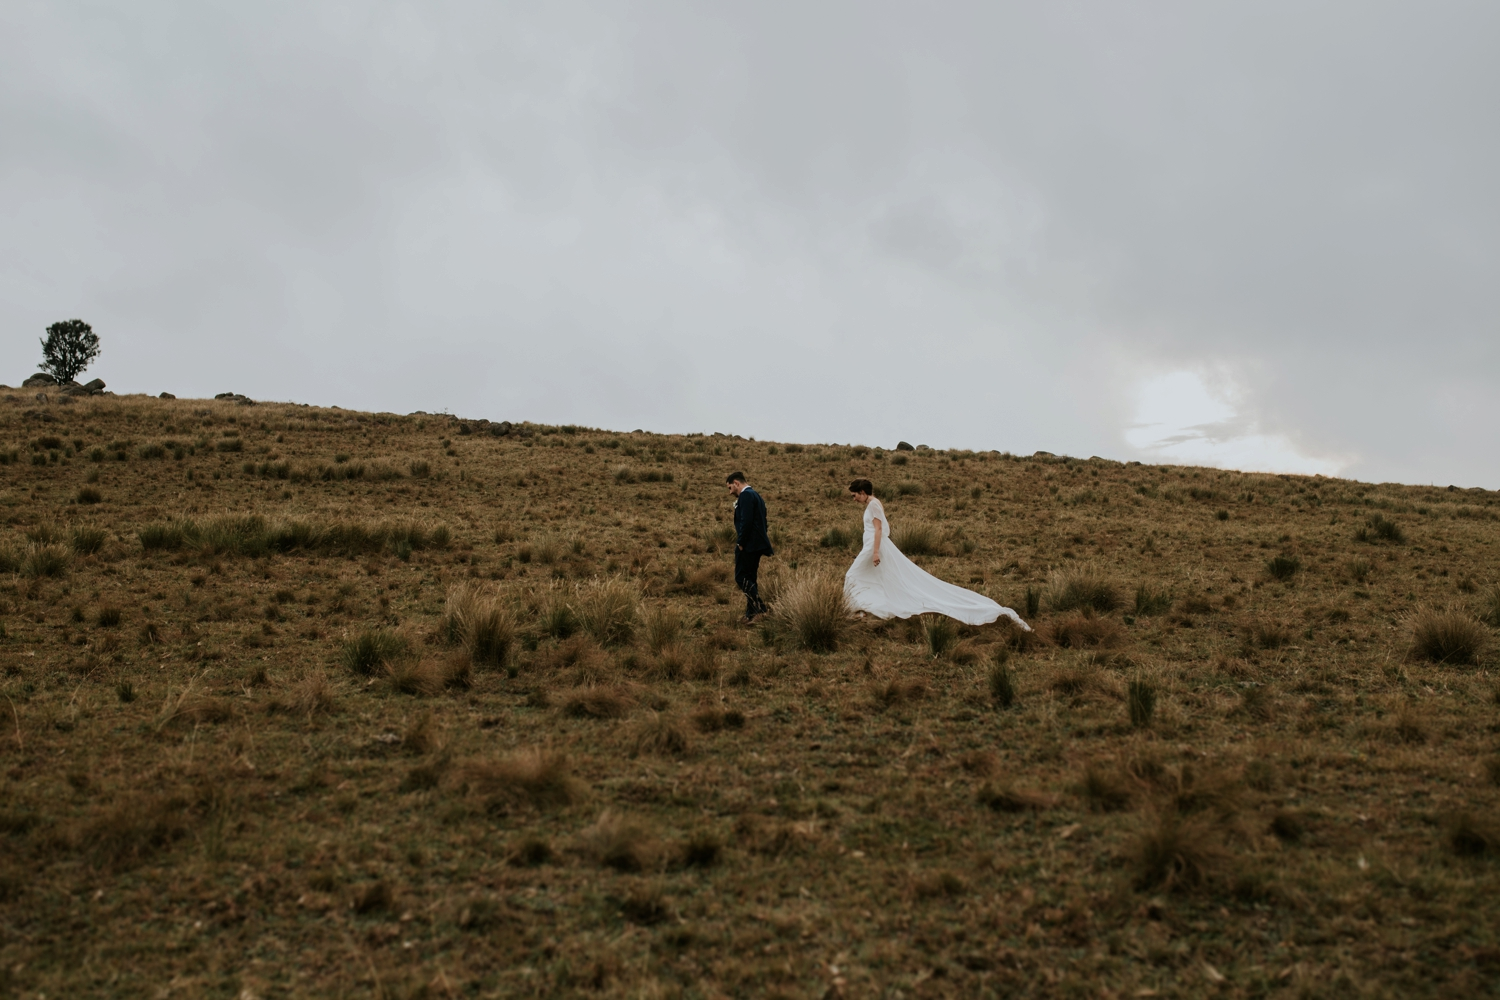 Epic and candid Wedding Portraits by Vancouver Wedding Photographer in incredible landscape